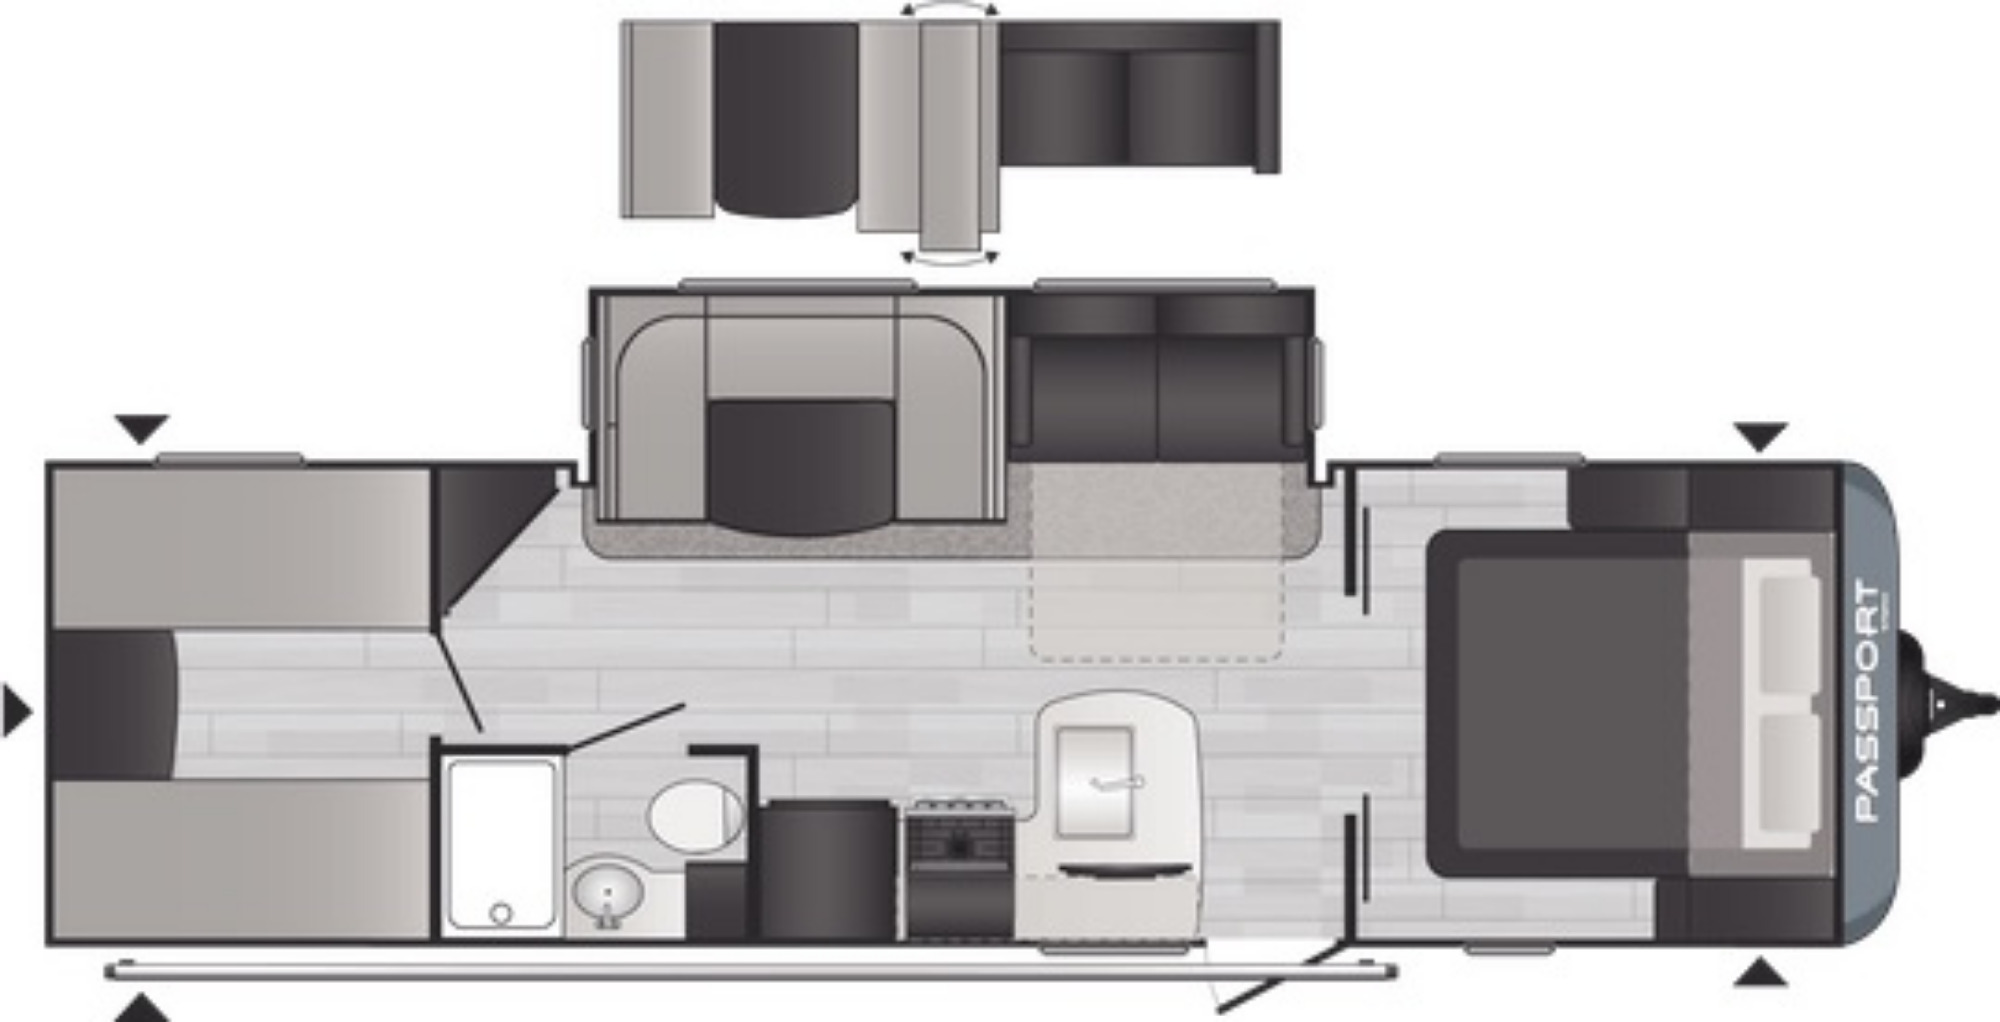 View Floor Plan for 2021 KEYSTONE PASSPORT 282QB